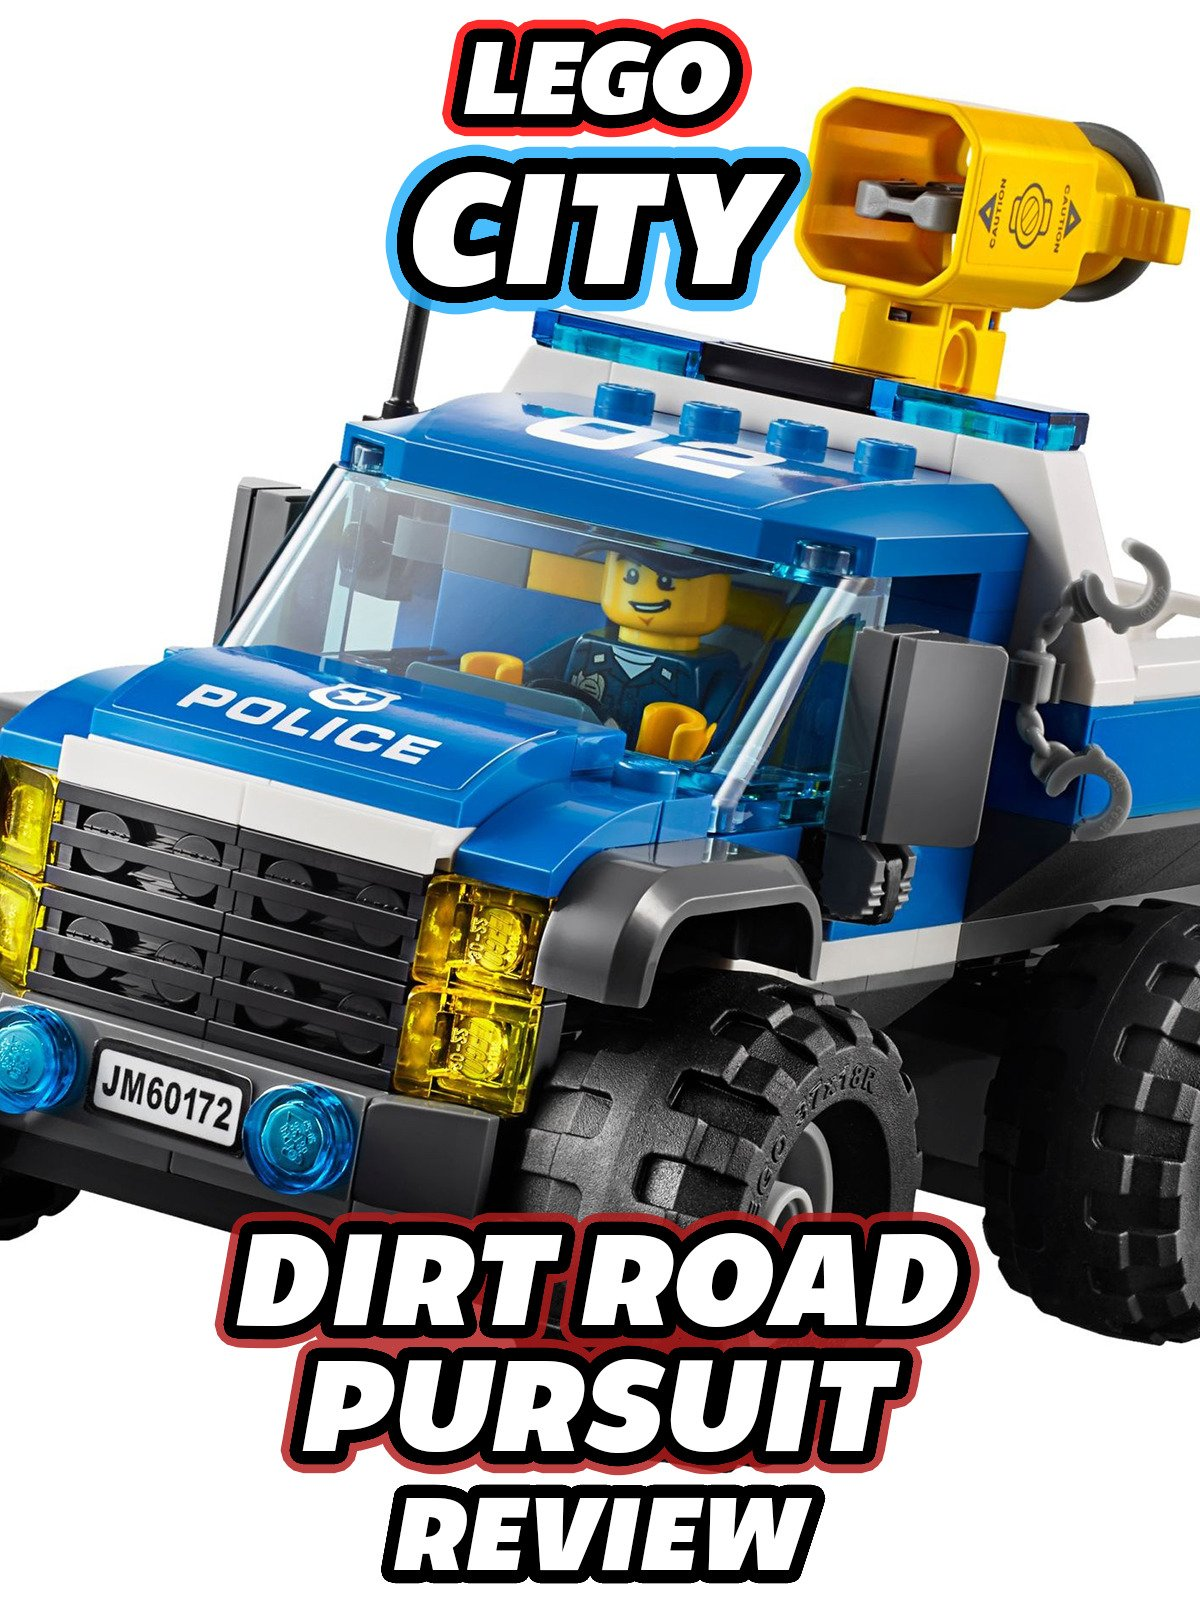 Review: Lego City Dirt Road Pursuit Review